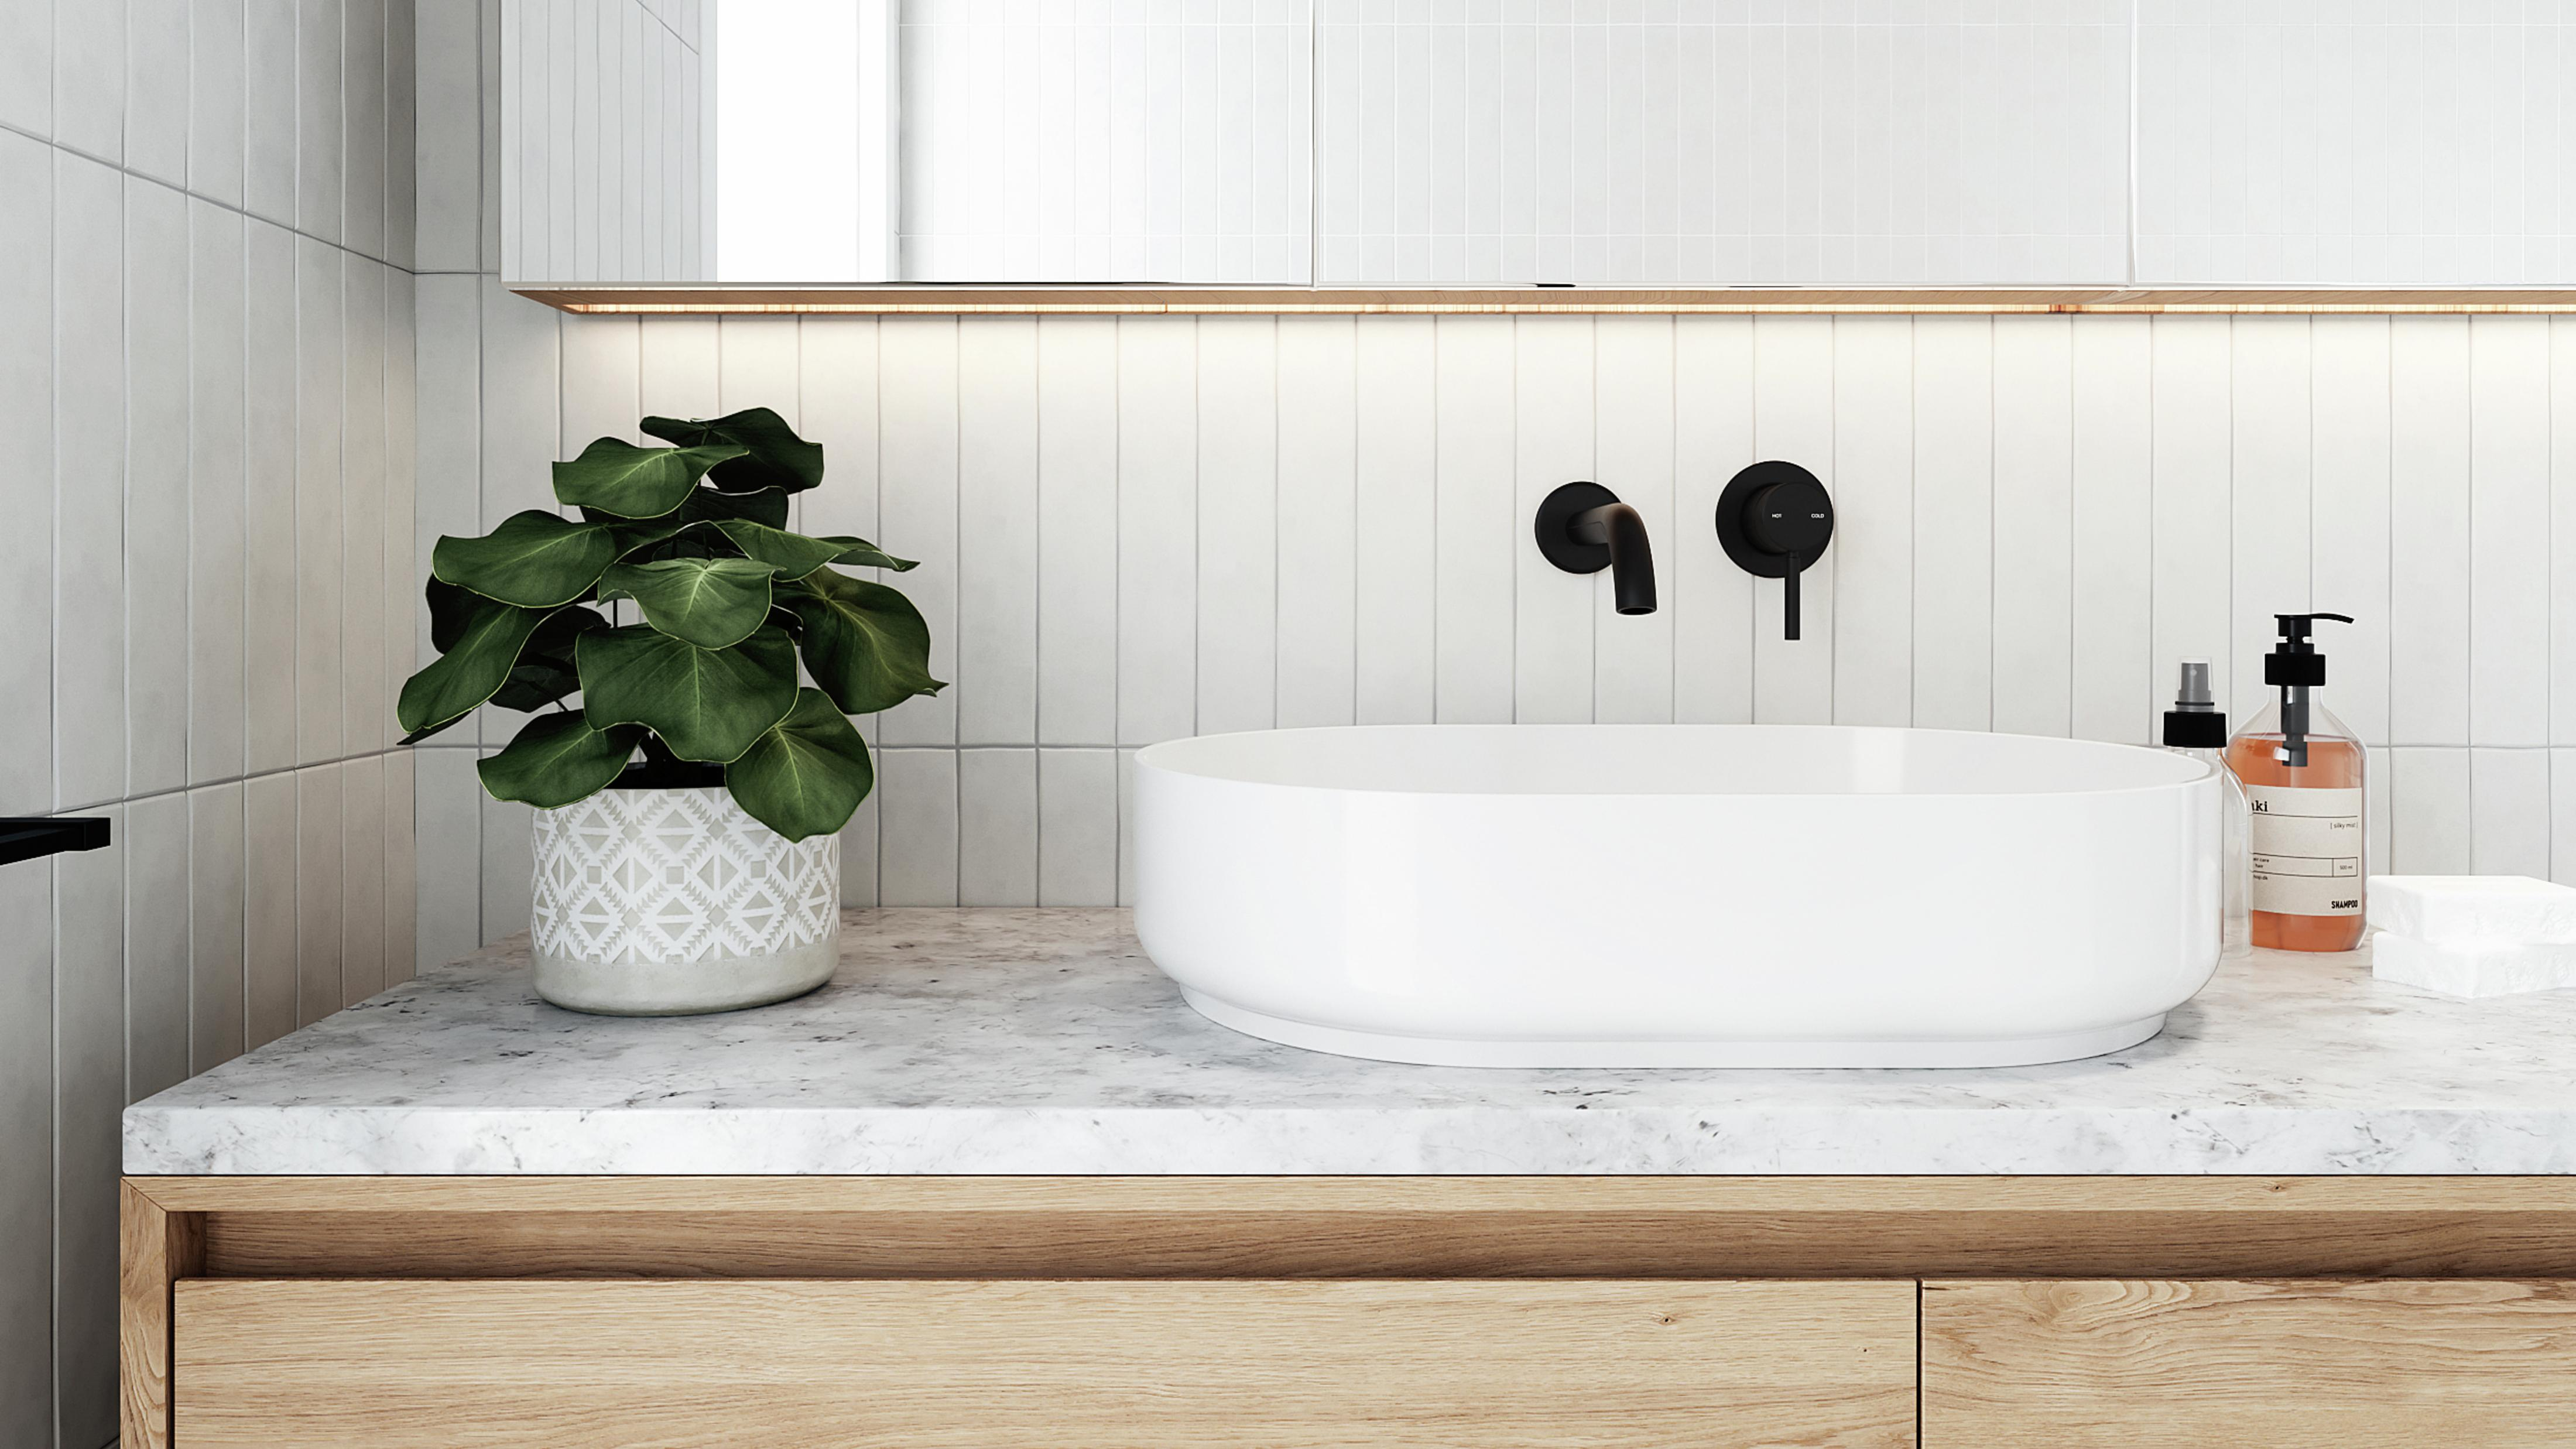 Bathroom featuring countertop basin, black tapware, plant and timber cabinetry.